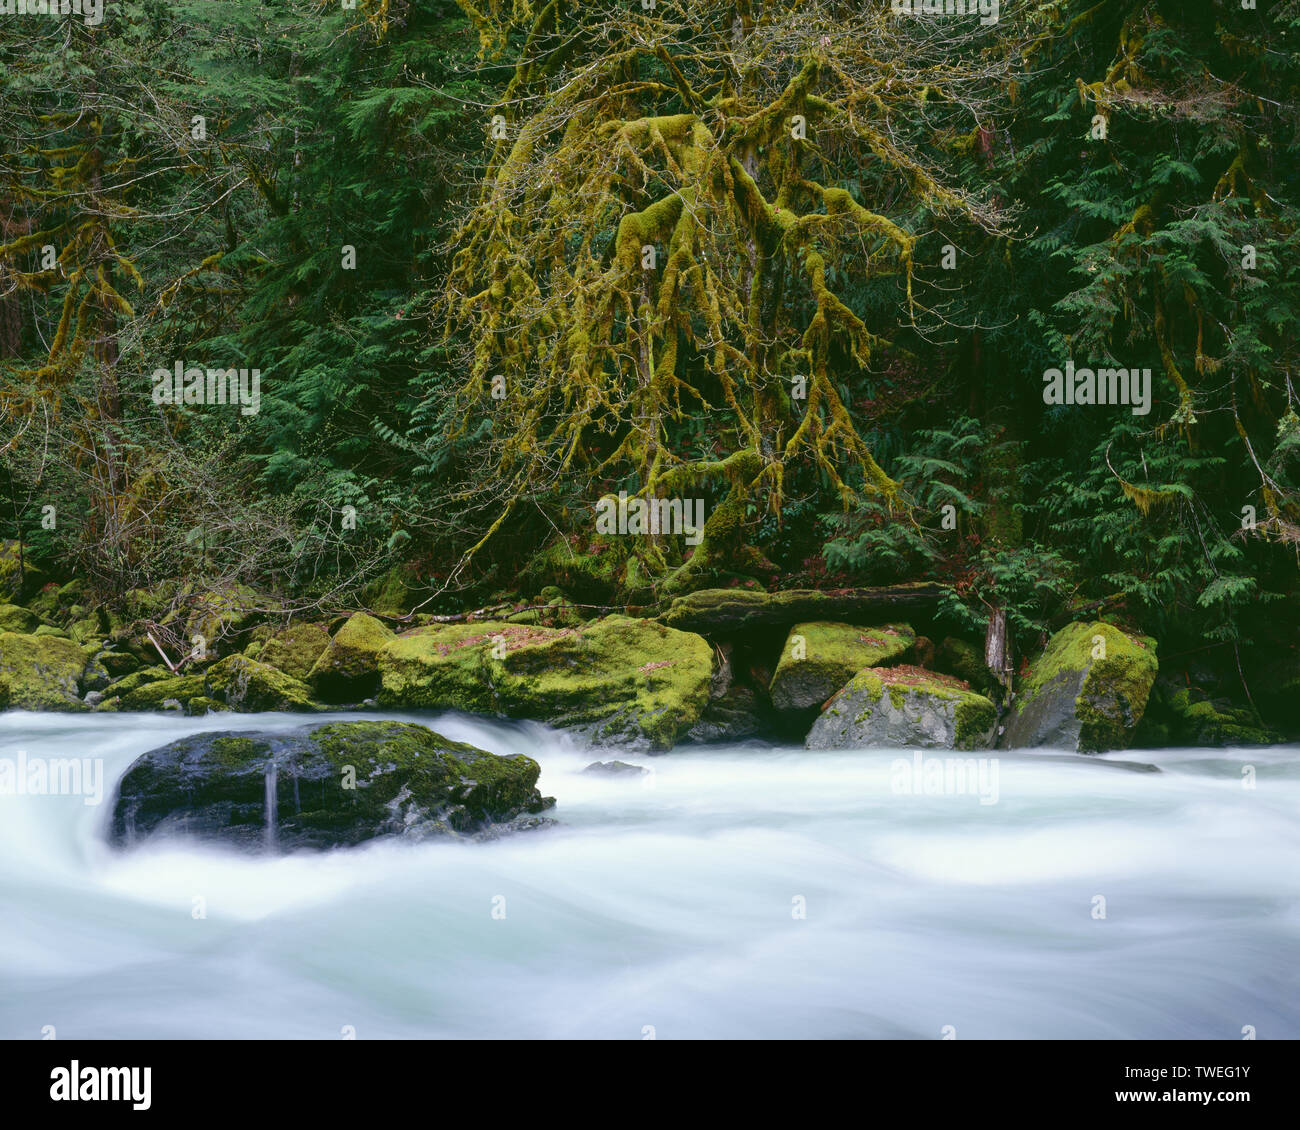 USA, Washington, Olympic National Park, Maple and conifers line bank above North Fork Skokomish River which is swollen from spring runoff. Stock Photo